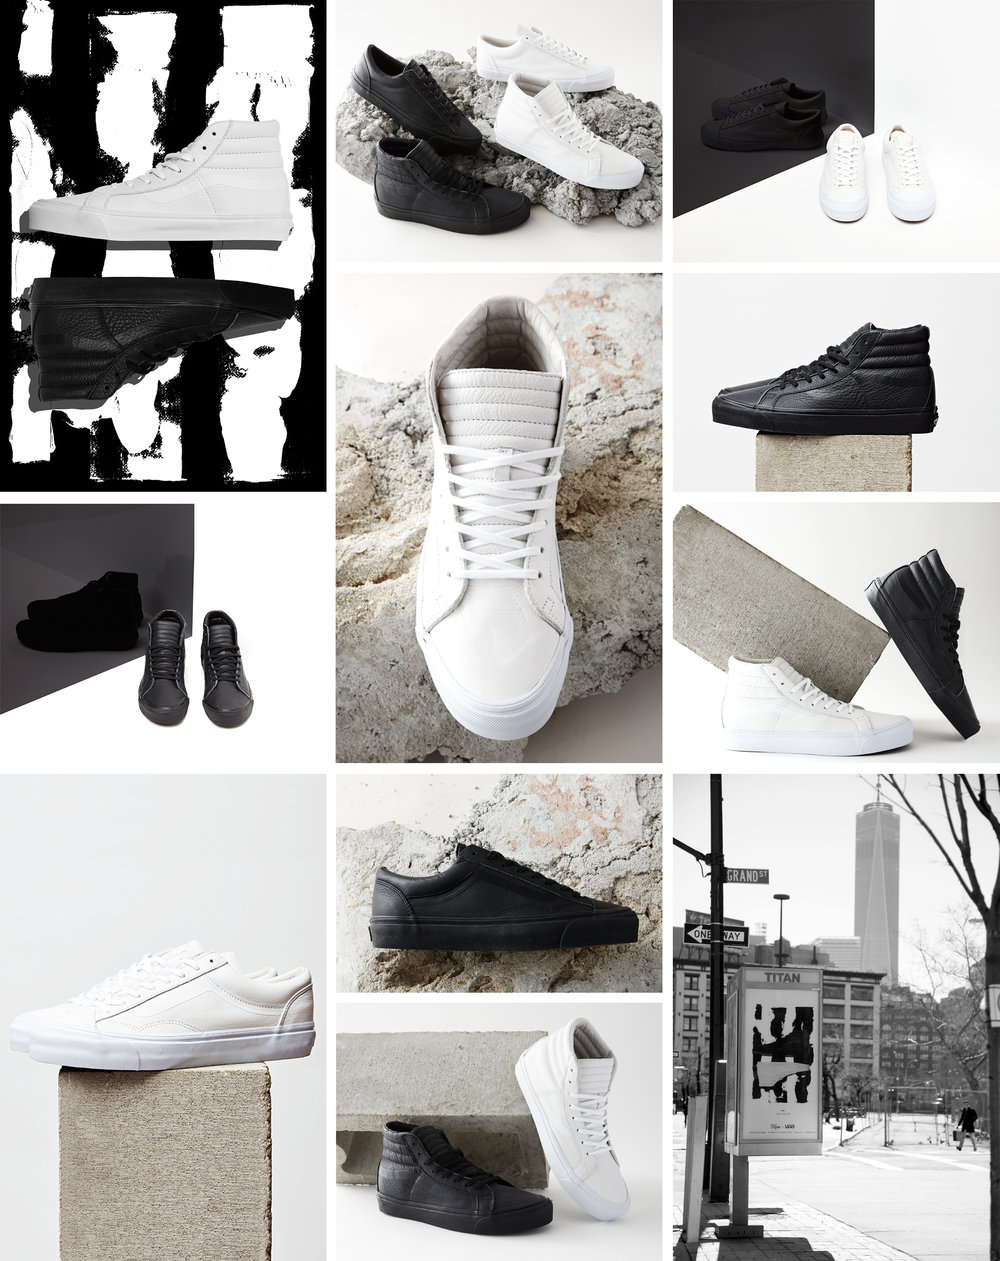 The Halves collection includes an OG SK8-Hi LX and an OG Style 36 LX, both produced in all black and all white premium leather color ways. Made exclusively for DQM, the shoes are inspired by a study in minimalism, and in contrasts and transitions: two parts of one, light and dark, black and white, and the gray areas. The shoes combine a feeling of minimalism, with refined, pared-back styling and a completely monotone palette, with a feeling of luxury, fabricated in soft, super premium full-grain leather and featuring quilted leather tongues and gold foil printing on cork insoles. They have a deconstructed look with minimal branding, simple punched eyelets and high-density printed side-stripes. Photographed by Dominic Neitz in New York.